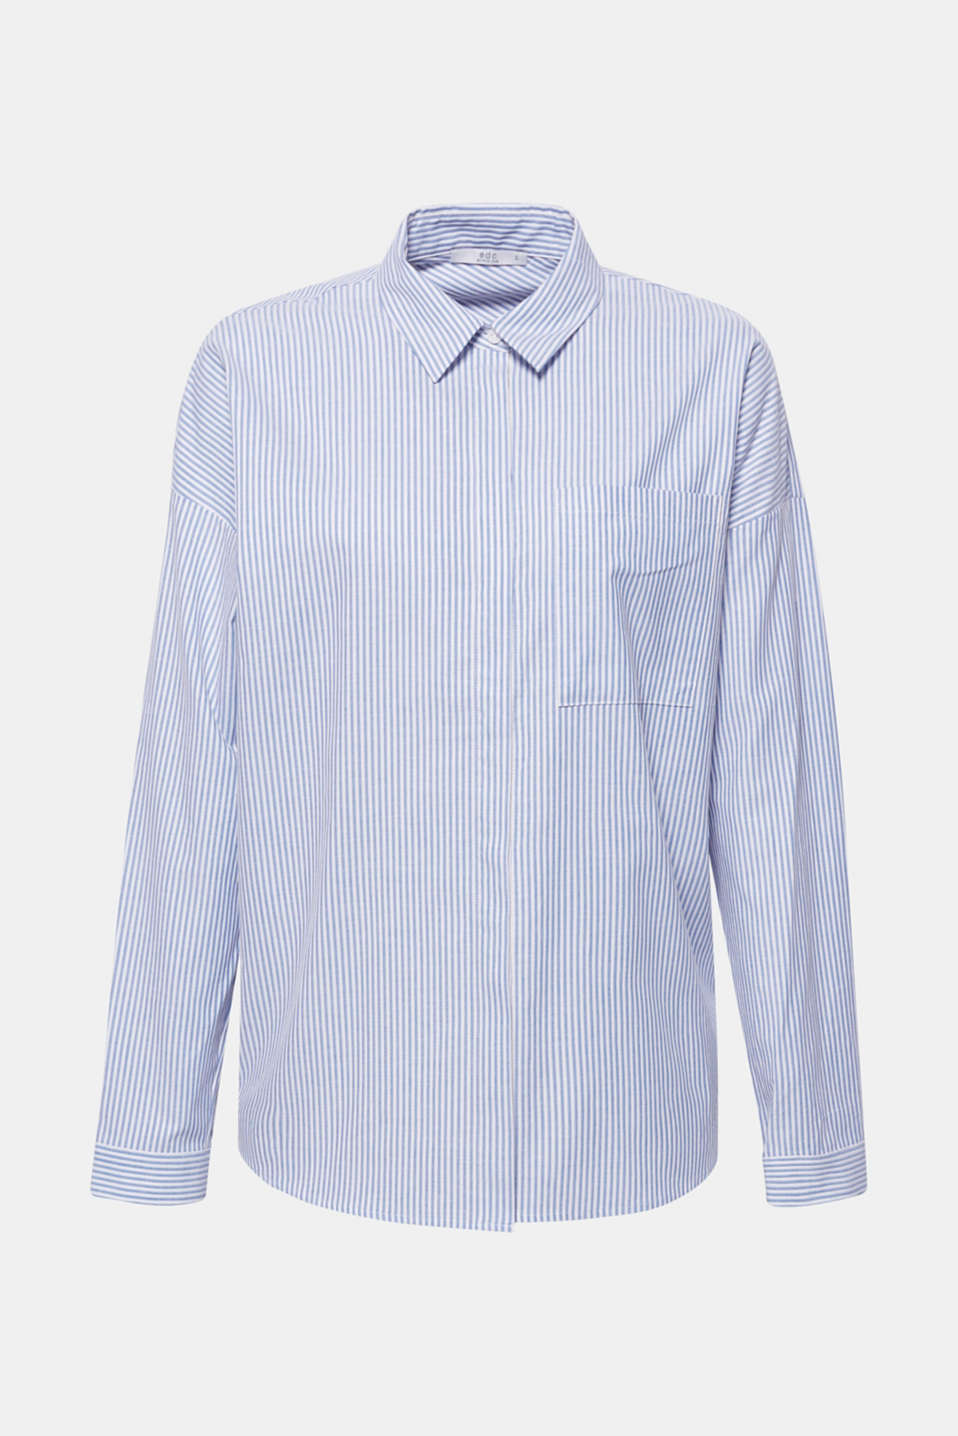 Striped shirt made of 100% cotton, LIGHT BLUE, detail image number 7